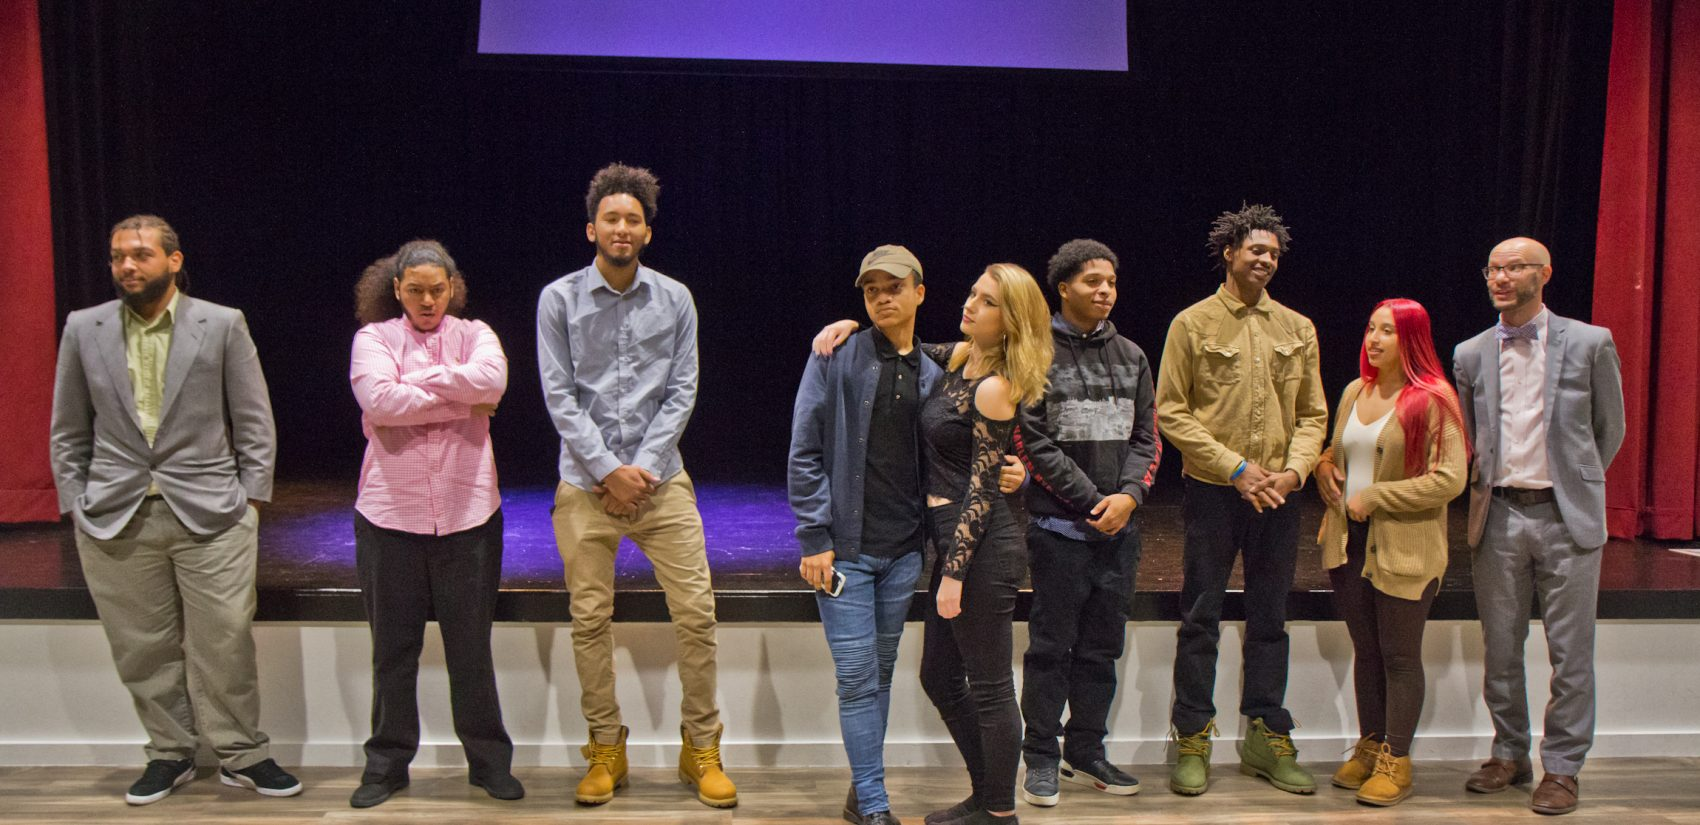 Students from El Centro's December 2018 cohort at the legacy project presentation event. (Kimberly Paynter/Keystone Crossroads)